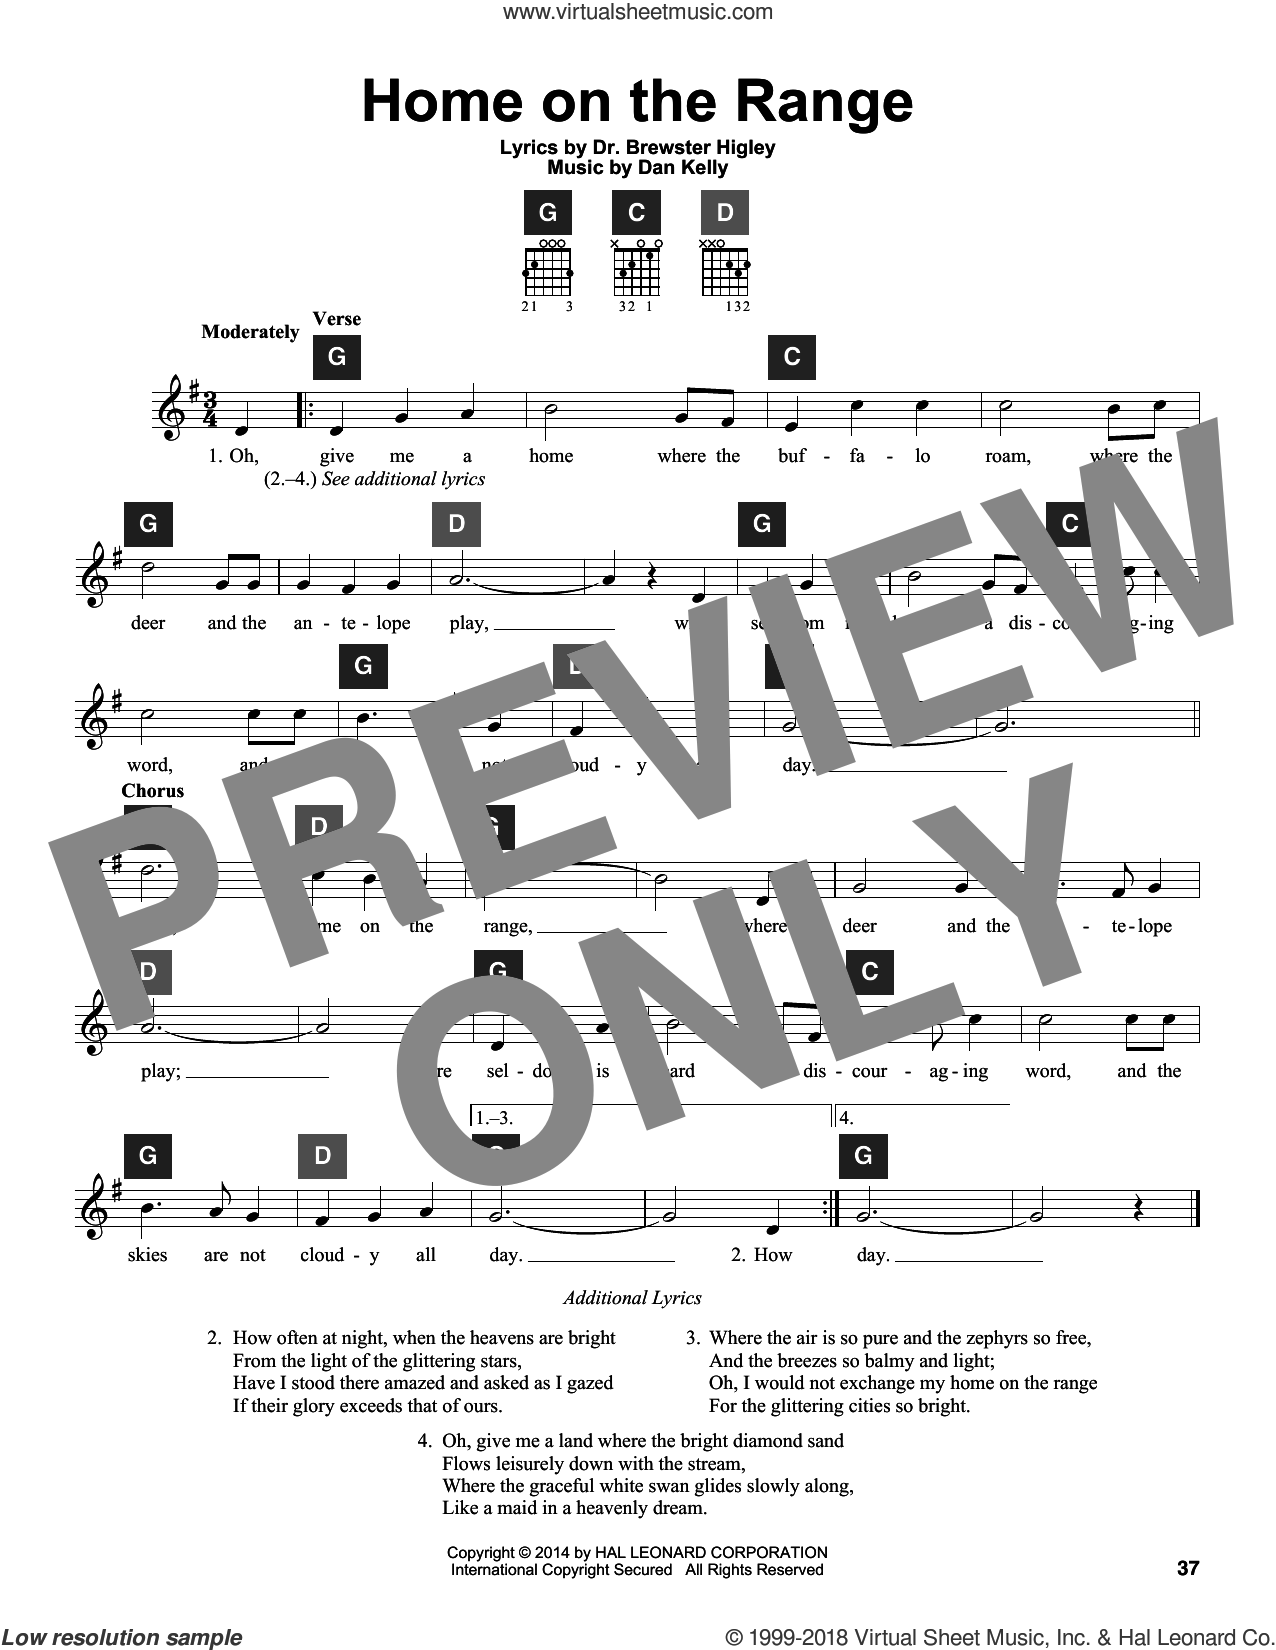 Home On The Range sheet music for guitar solo (ChordBuddy system) by Dr. Brewster Higley and Dan Kelly. Score Image Preview.